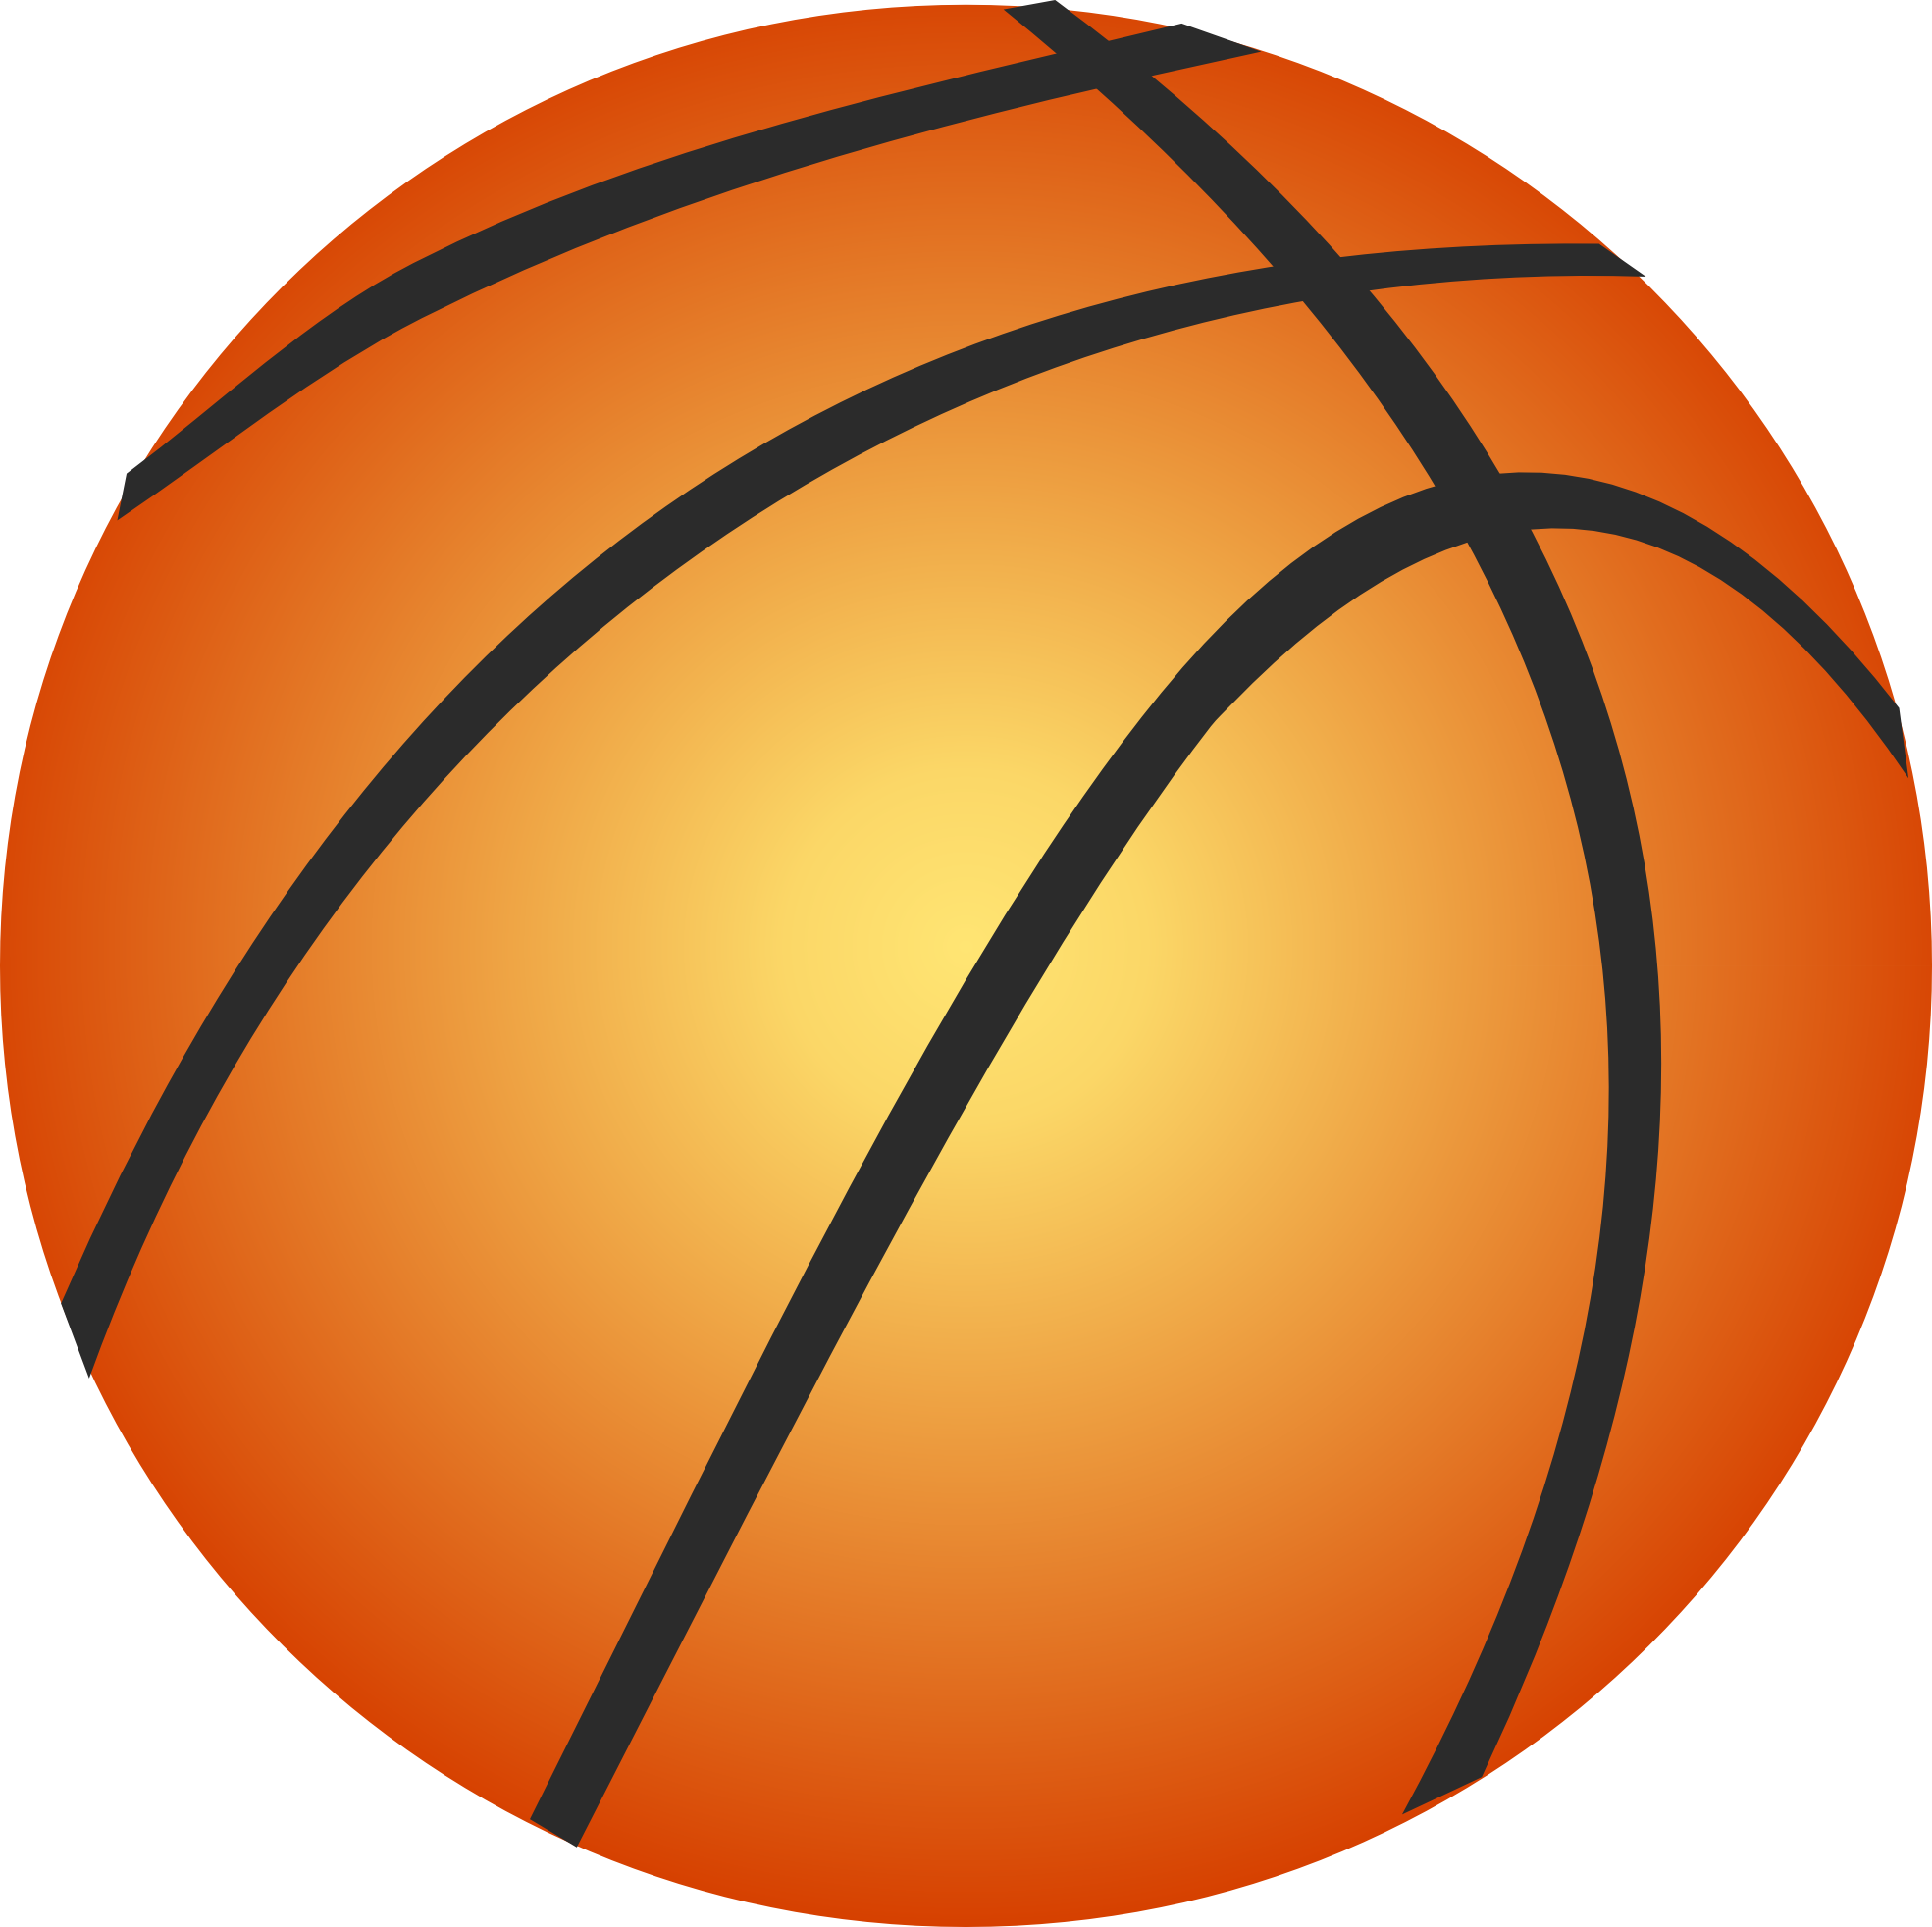 Jpeg basketball clipart black and white picture library download Basketball Clipart | Clipart Panda - Free Clipart Images picture library download